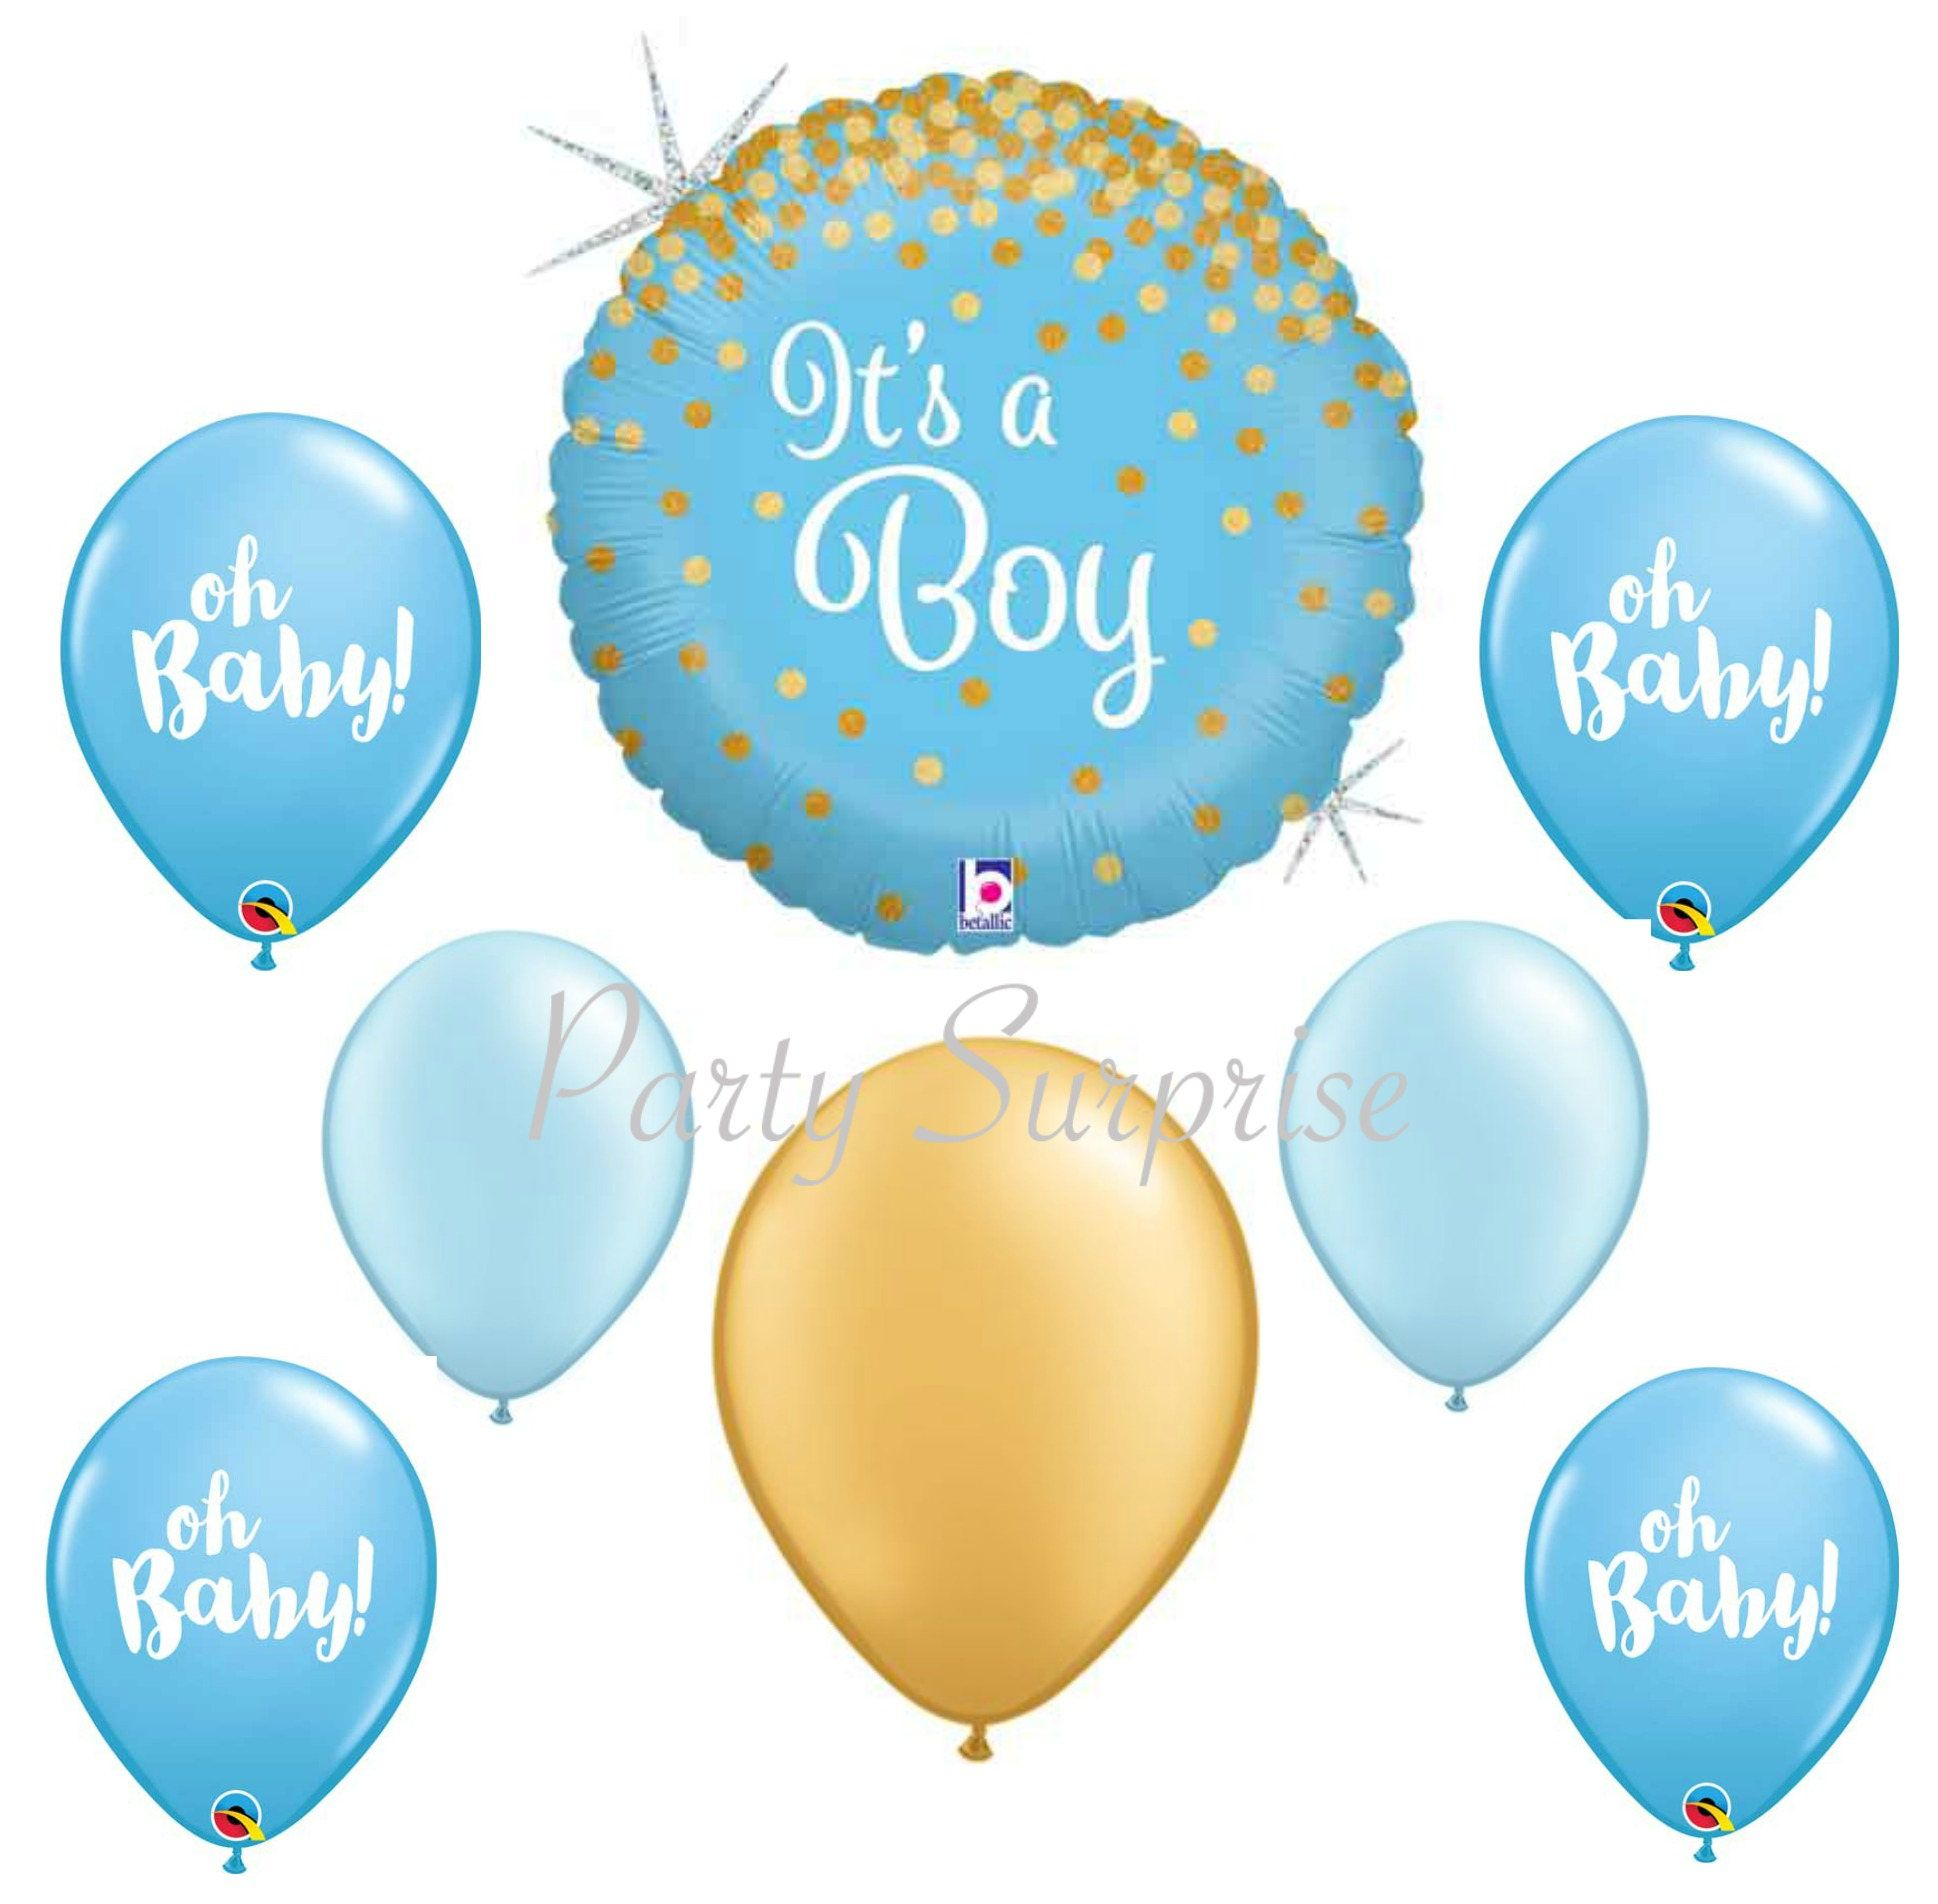 Oh Baby Boy Balloons Blue Gold Boy Baby Shower Its A Boy Balloons Blue And Gold Balloons New B Its A Boy Balloons Baby Boy Balloons Baby Birthday Decorations